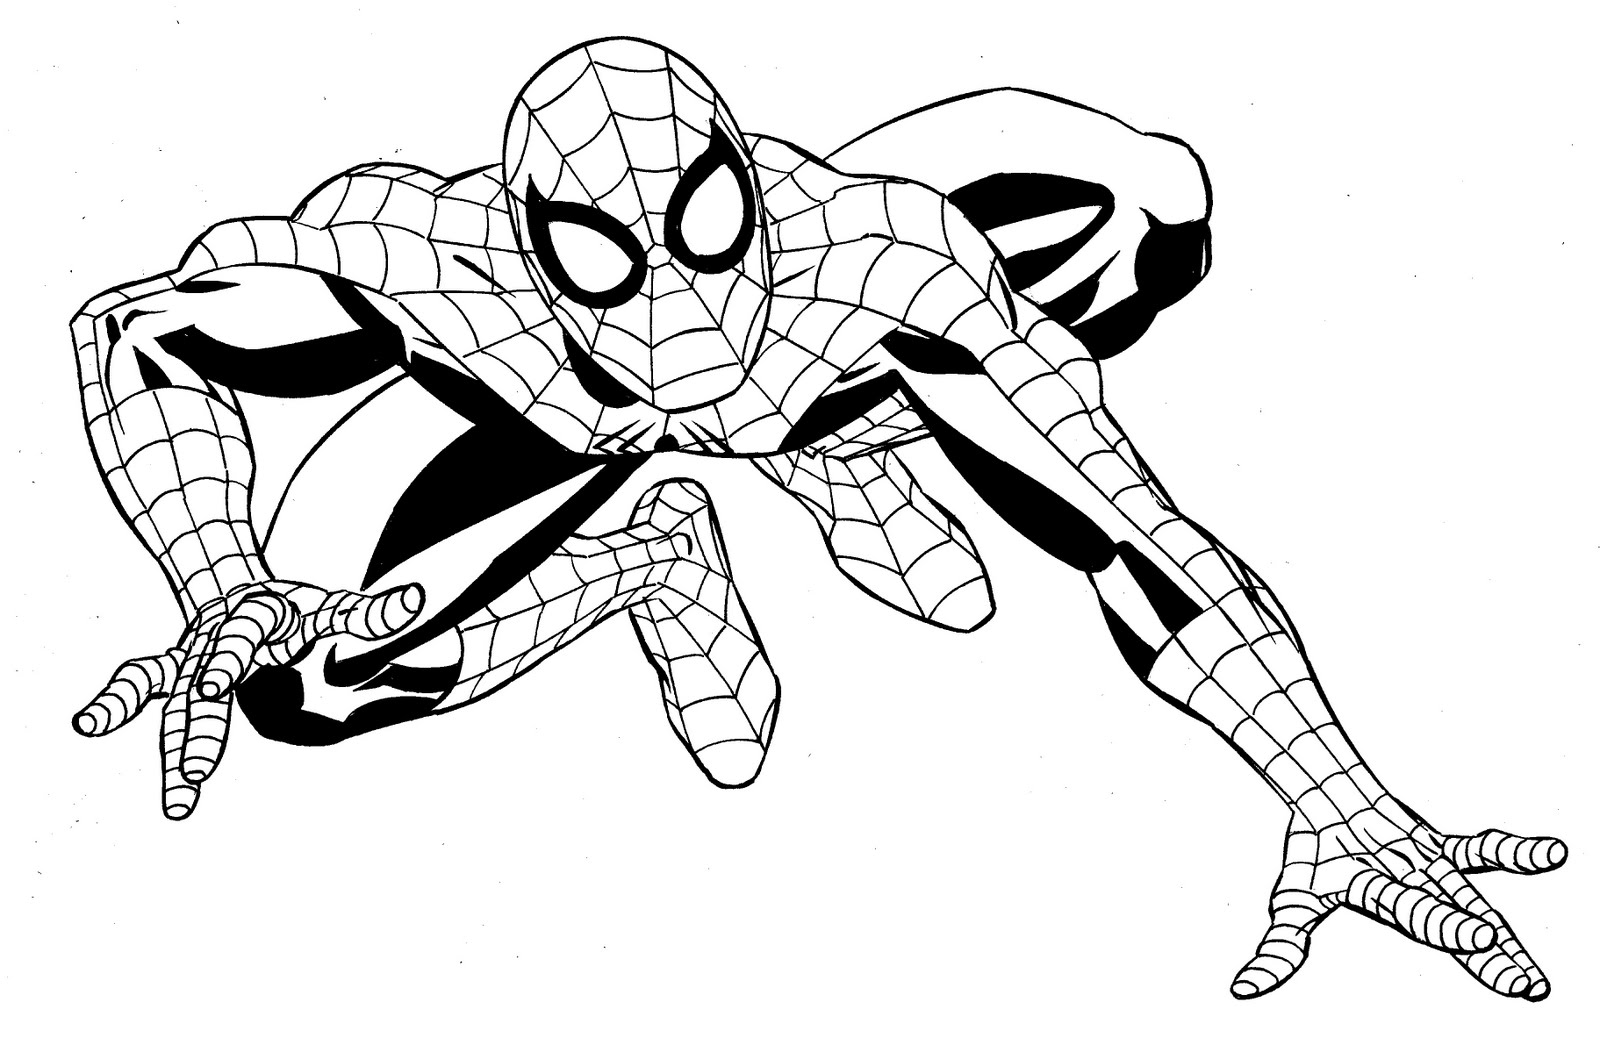 super heroes coloring pages - photo#12